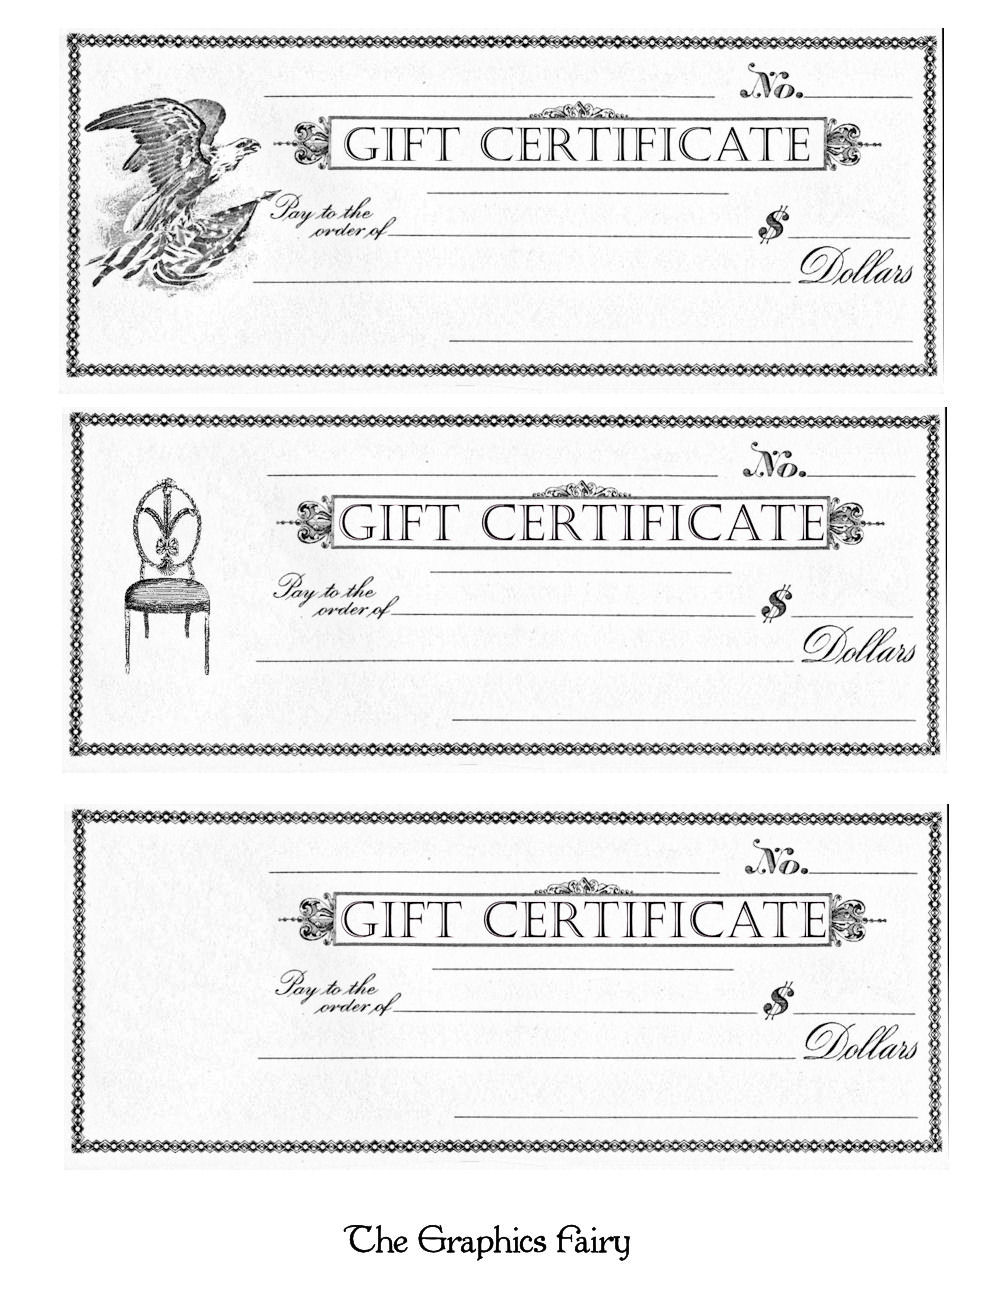 Free Printable Gift Certificates The Graphics Fairy - Downloadable gift certificate template